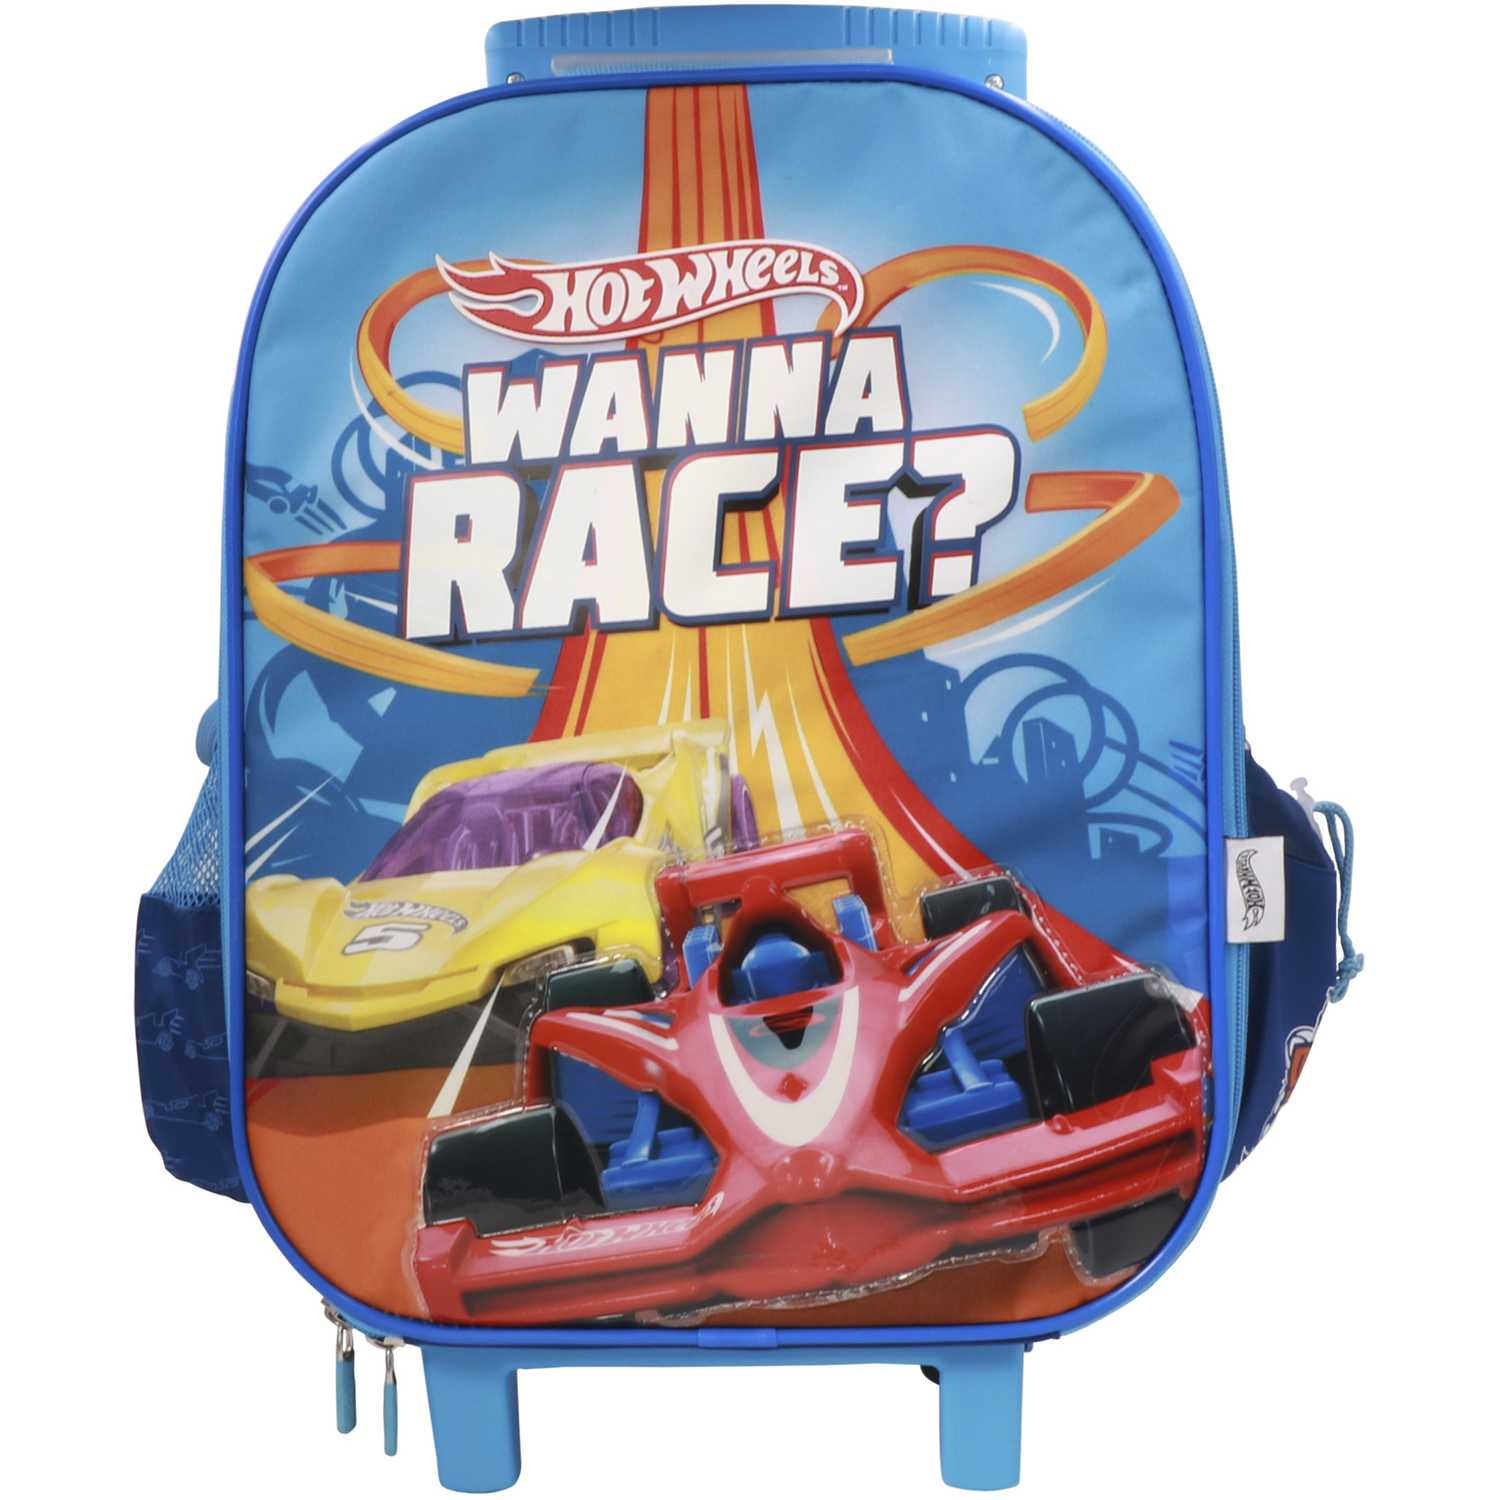 Mochila con ruedas de Niño Hot Wheels Azul maleta con ruedas hot wheels